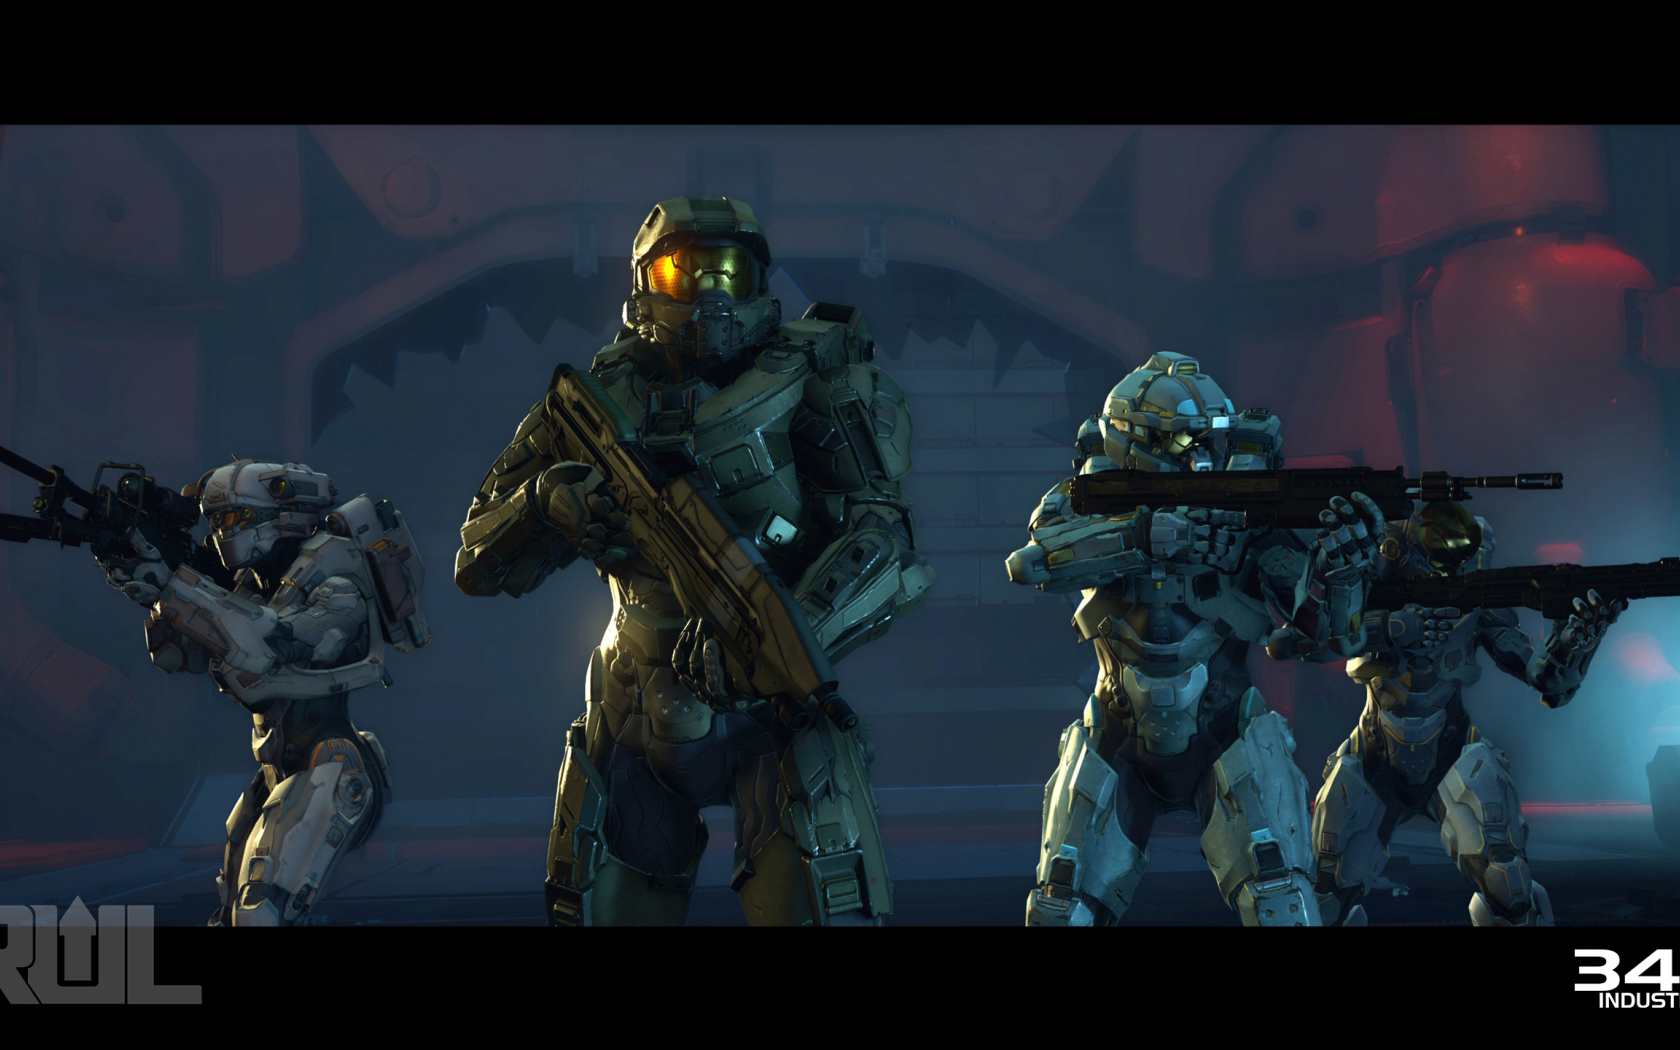 Free Download Halo 5 Guardians Screenshots Halo 5 Concept Art Halo